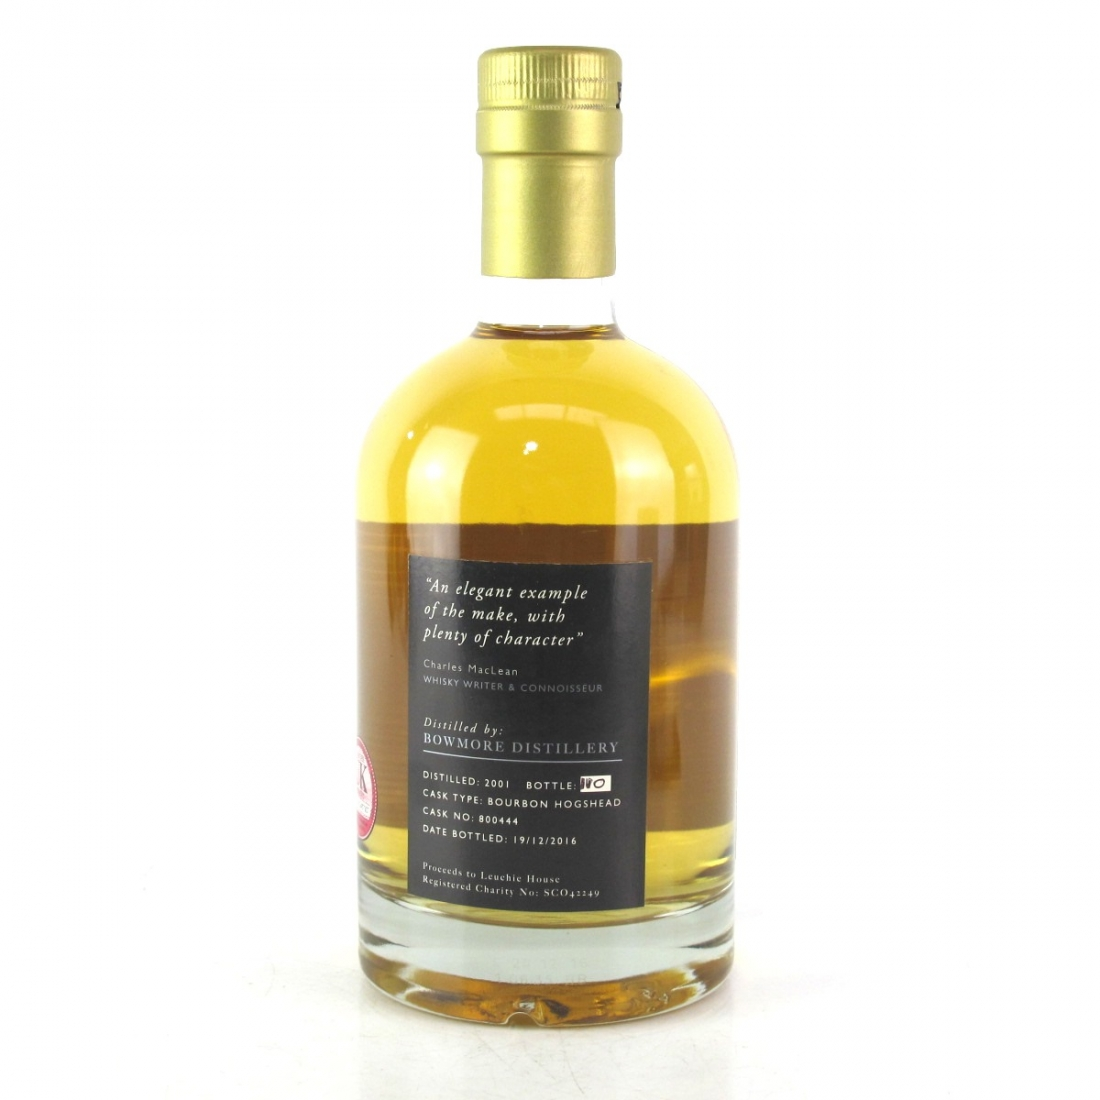 Bowmore 2001 The Leuchie Reserve 15 Year Old - Charity Bottle